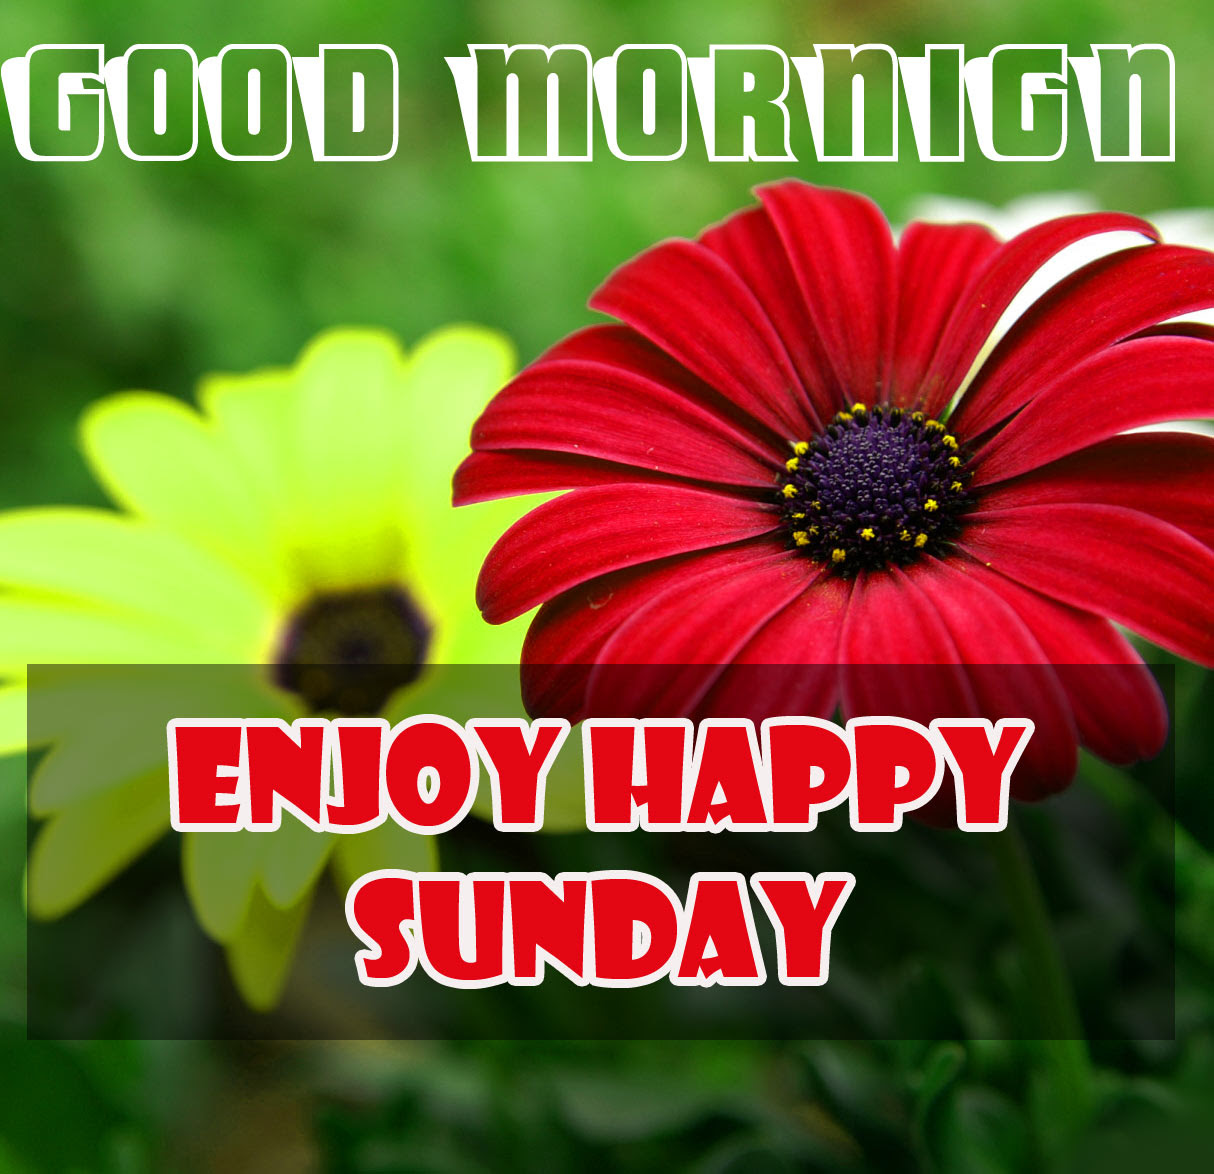 Sunday Good Morning Wishes Pics Free for Facebook